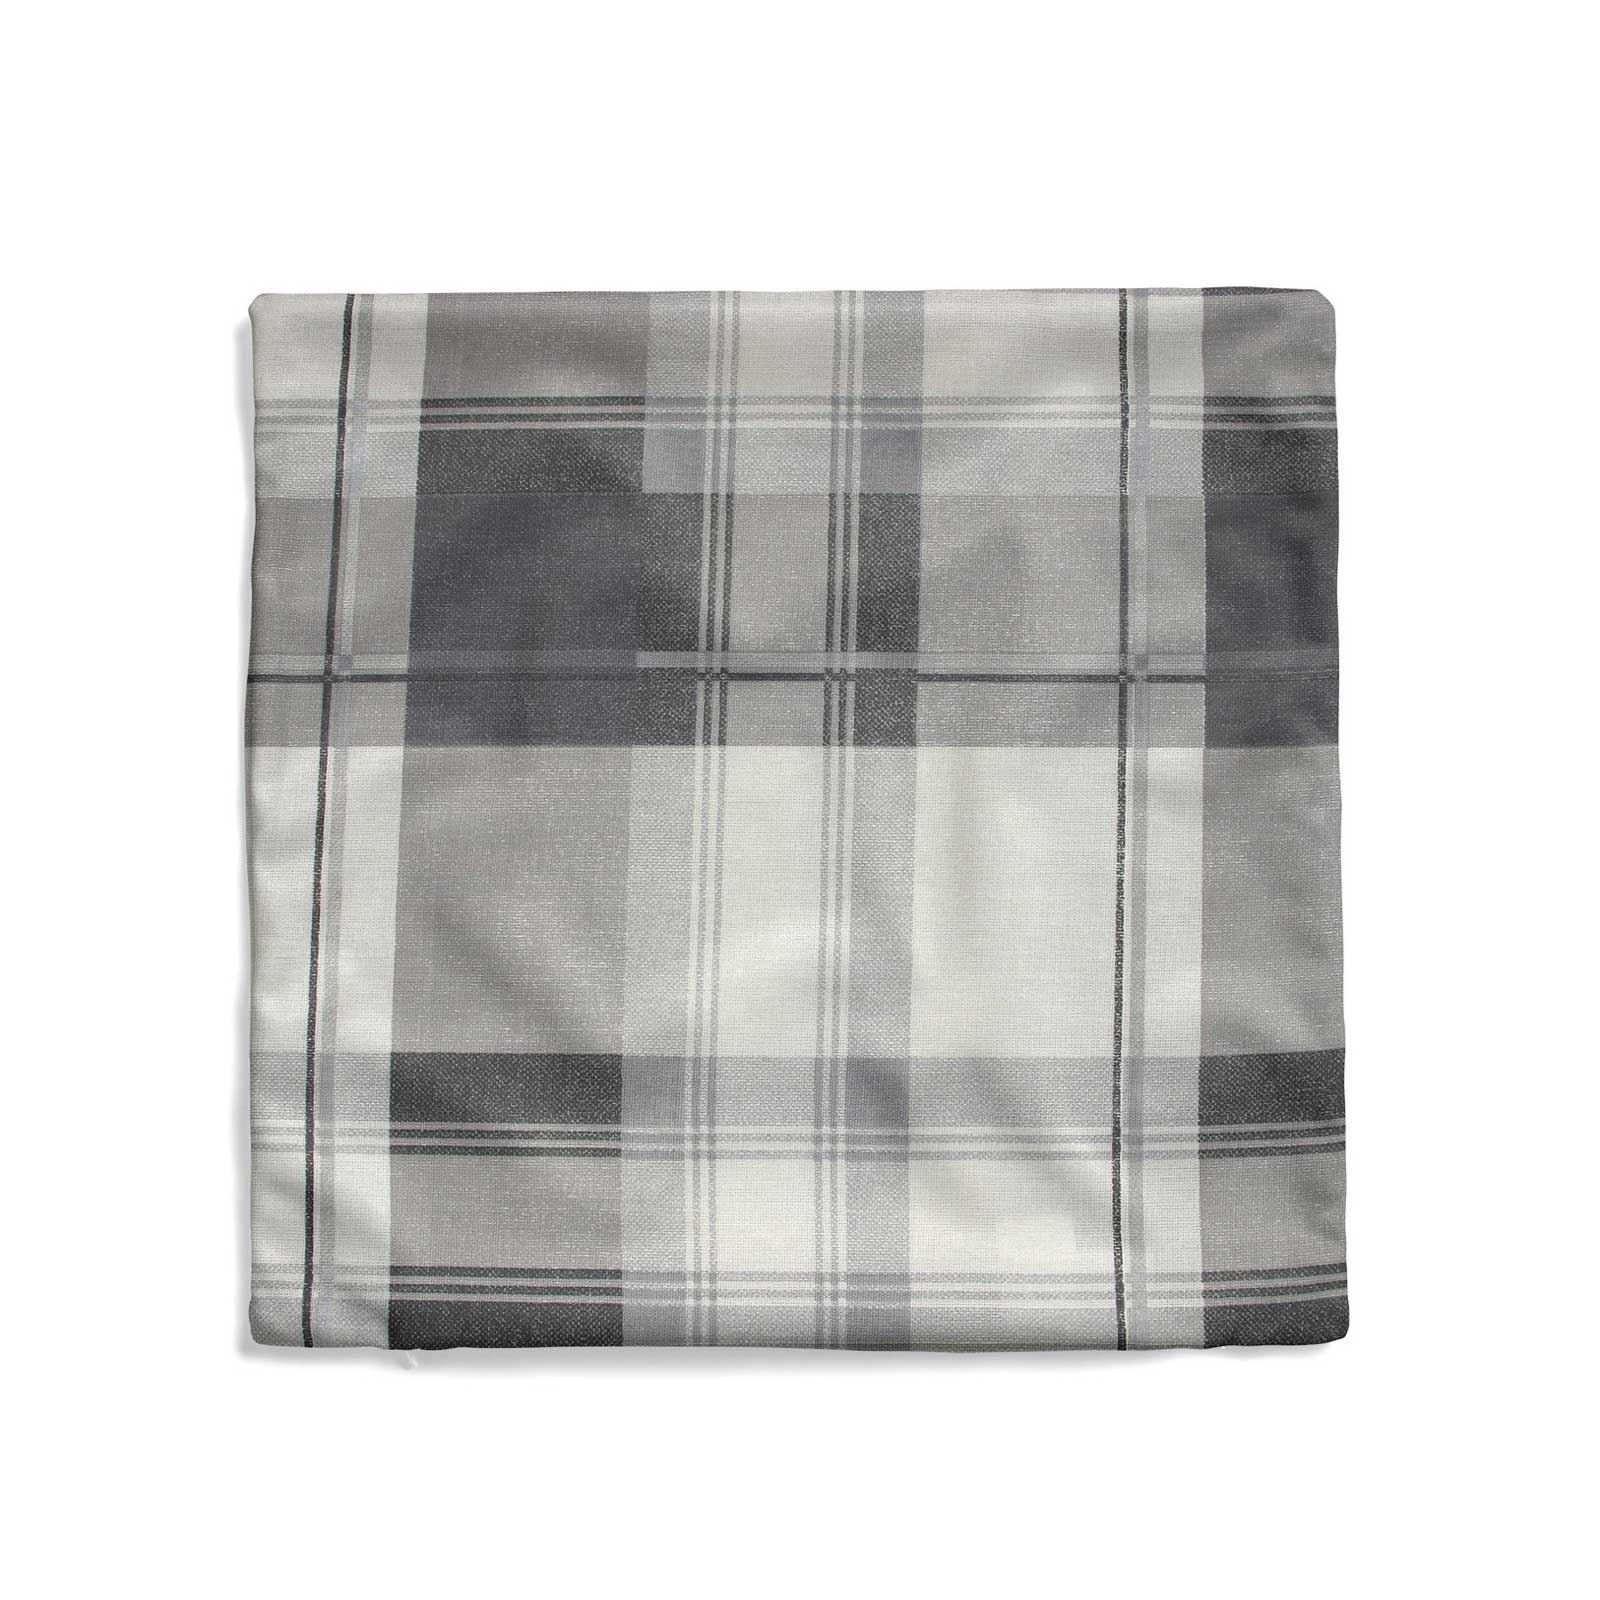 Grey-Ochre-Mustard-Cushion-Cover-Collection-17-034-18-034-Covers-Filled-Cushions thumbnail 28